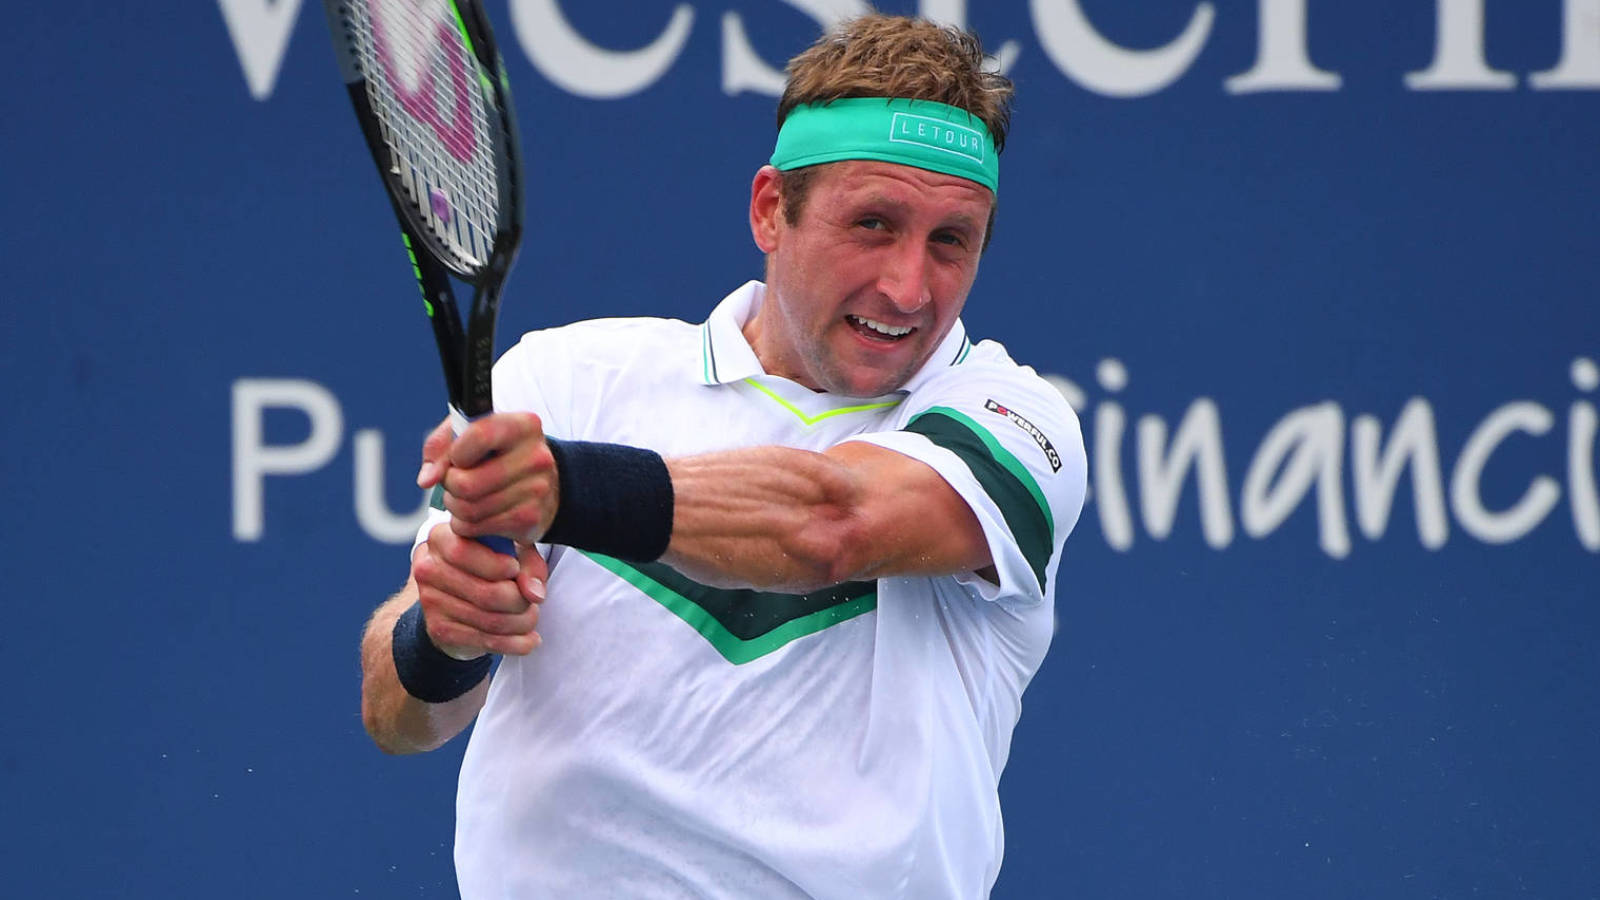 Tennys Sandgren lashes out at Australian Open quarantine after first-round exit